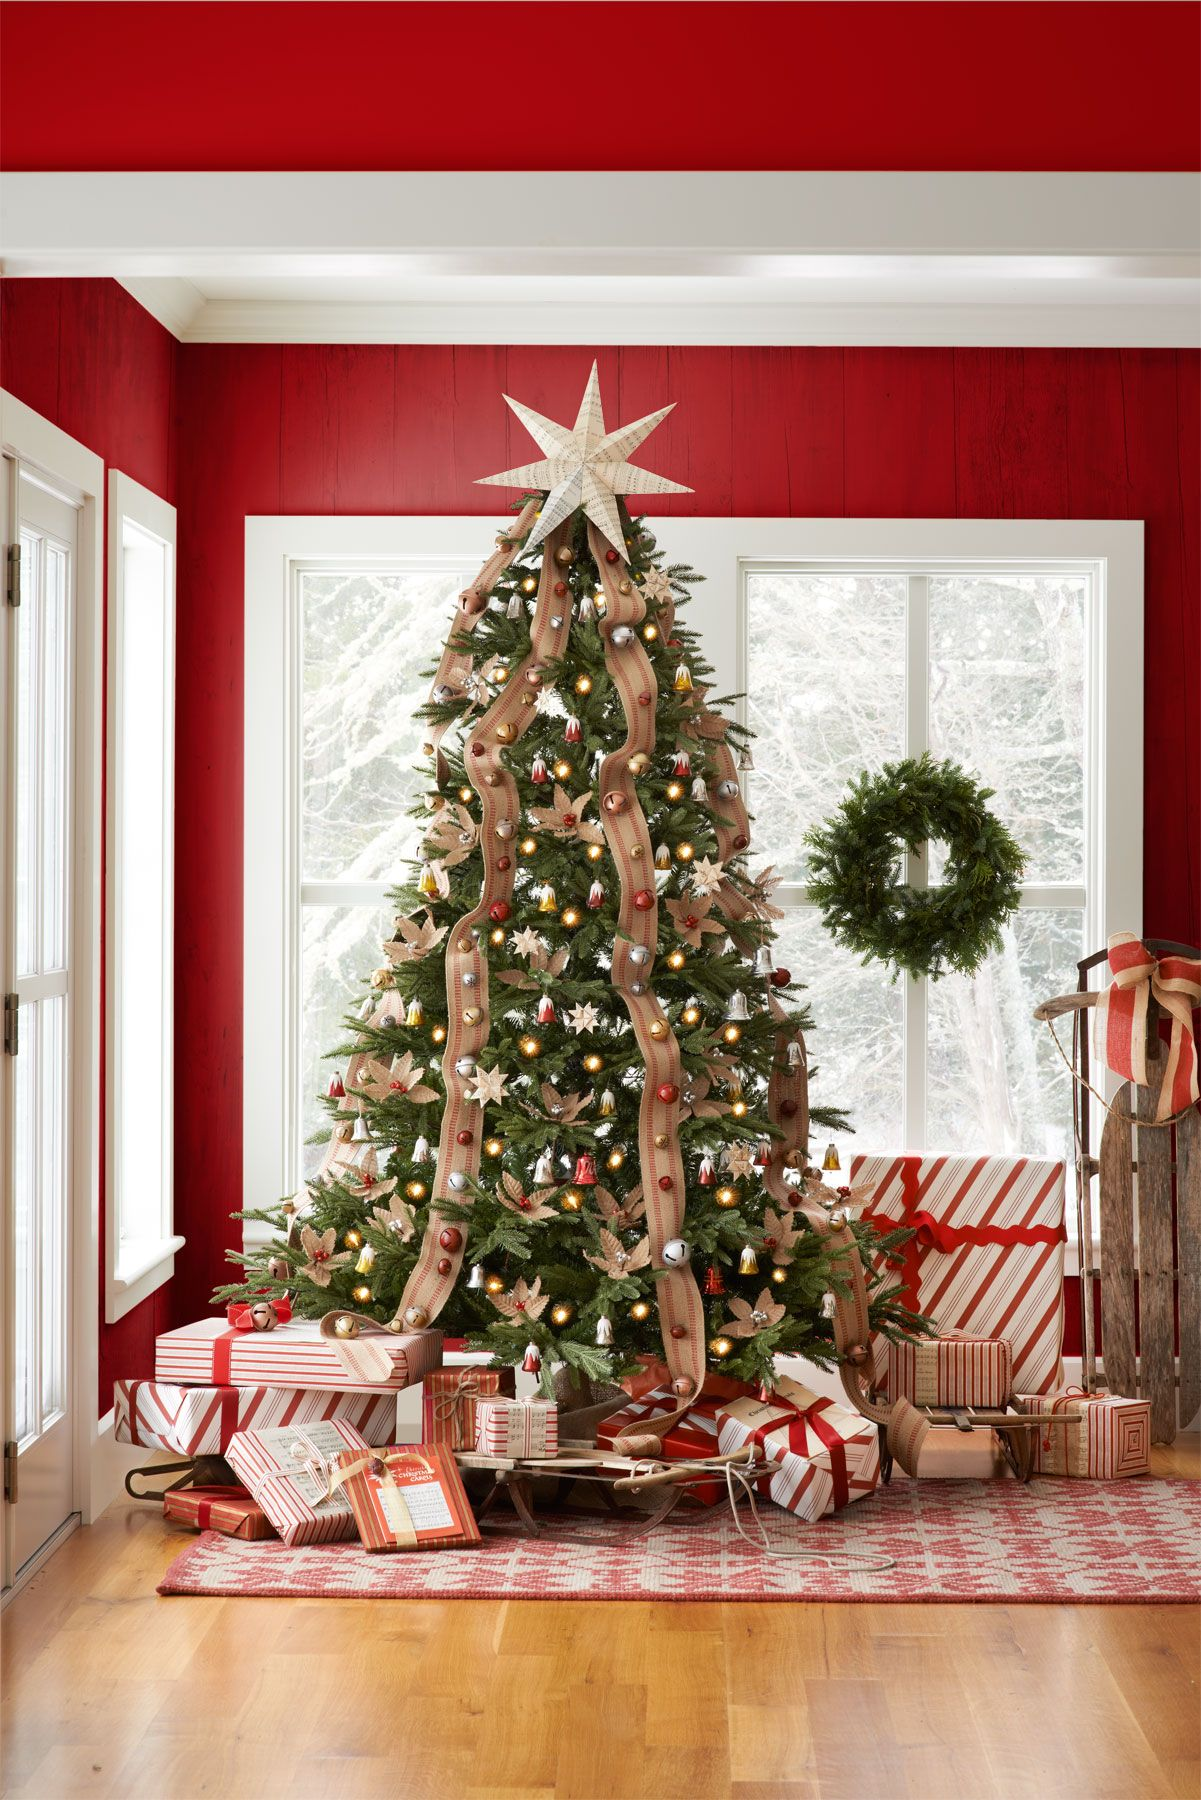 20 Rustic Christmas Trees Ideas For Country Decorations On